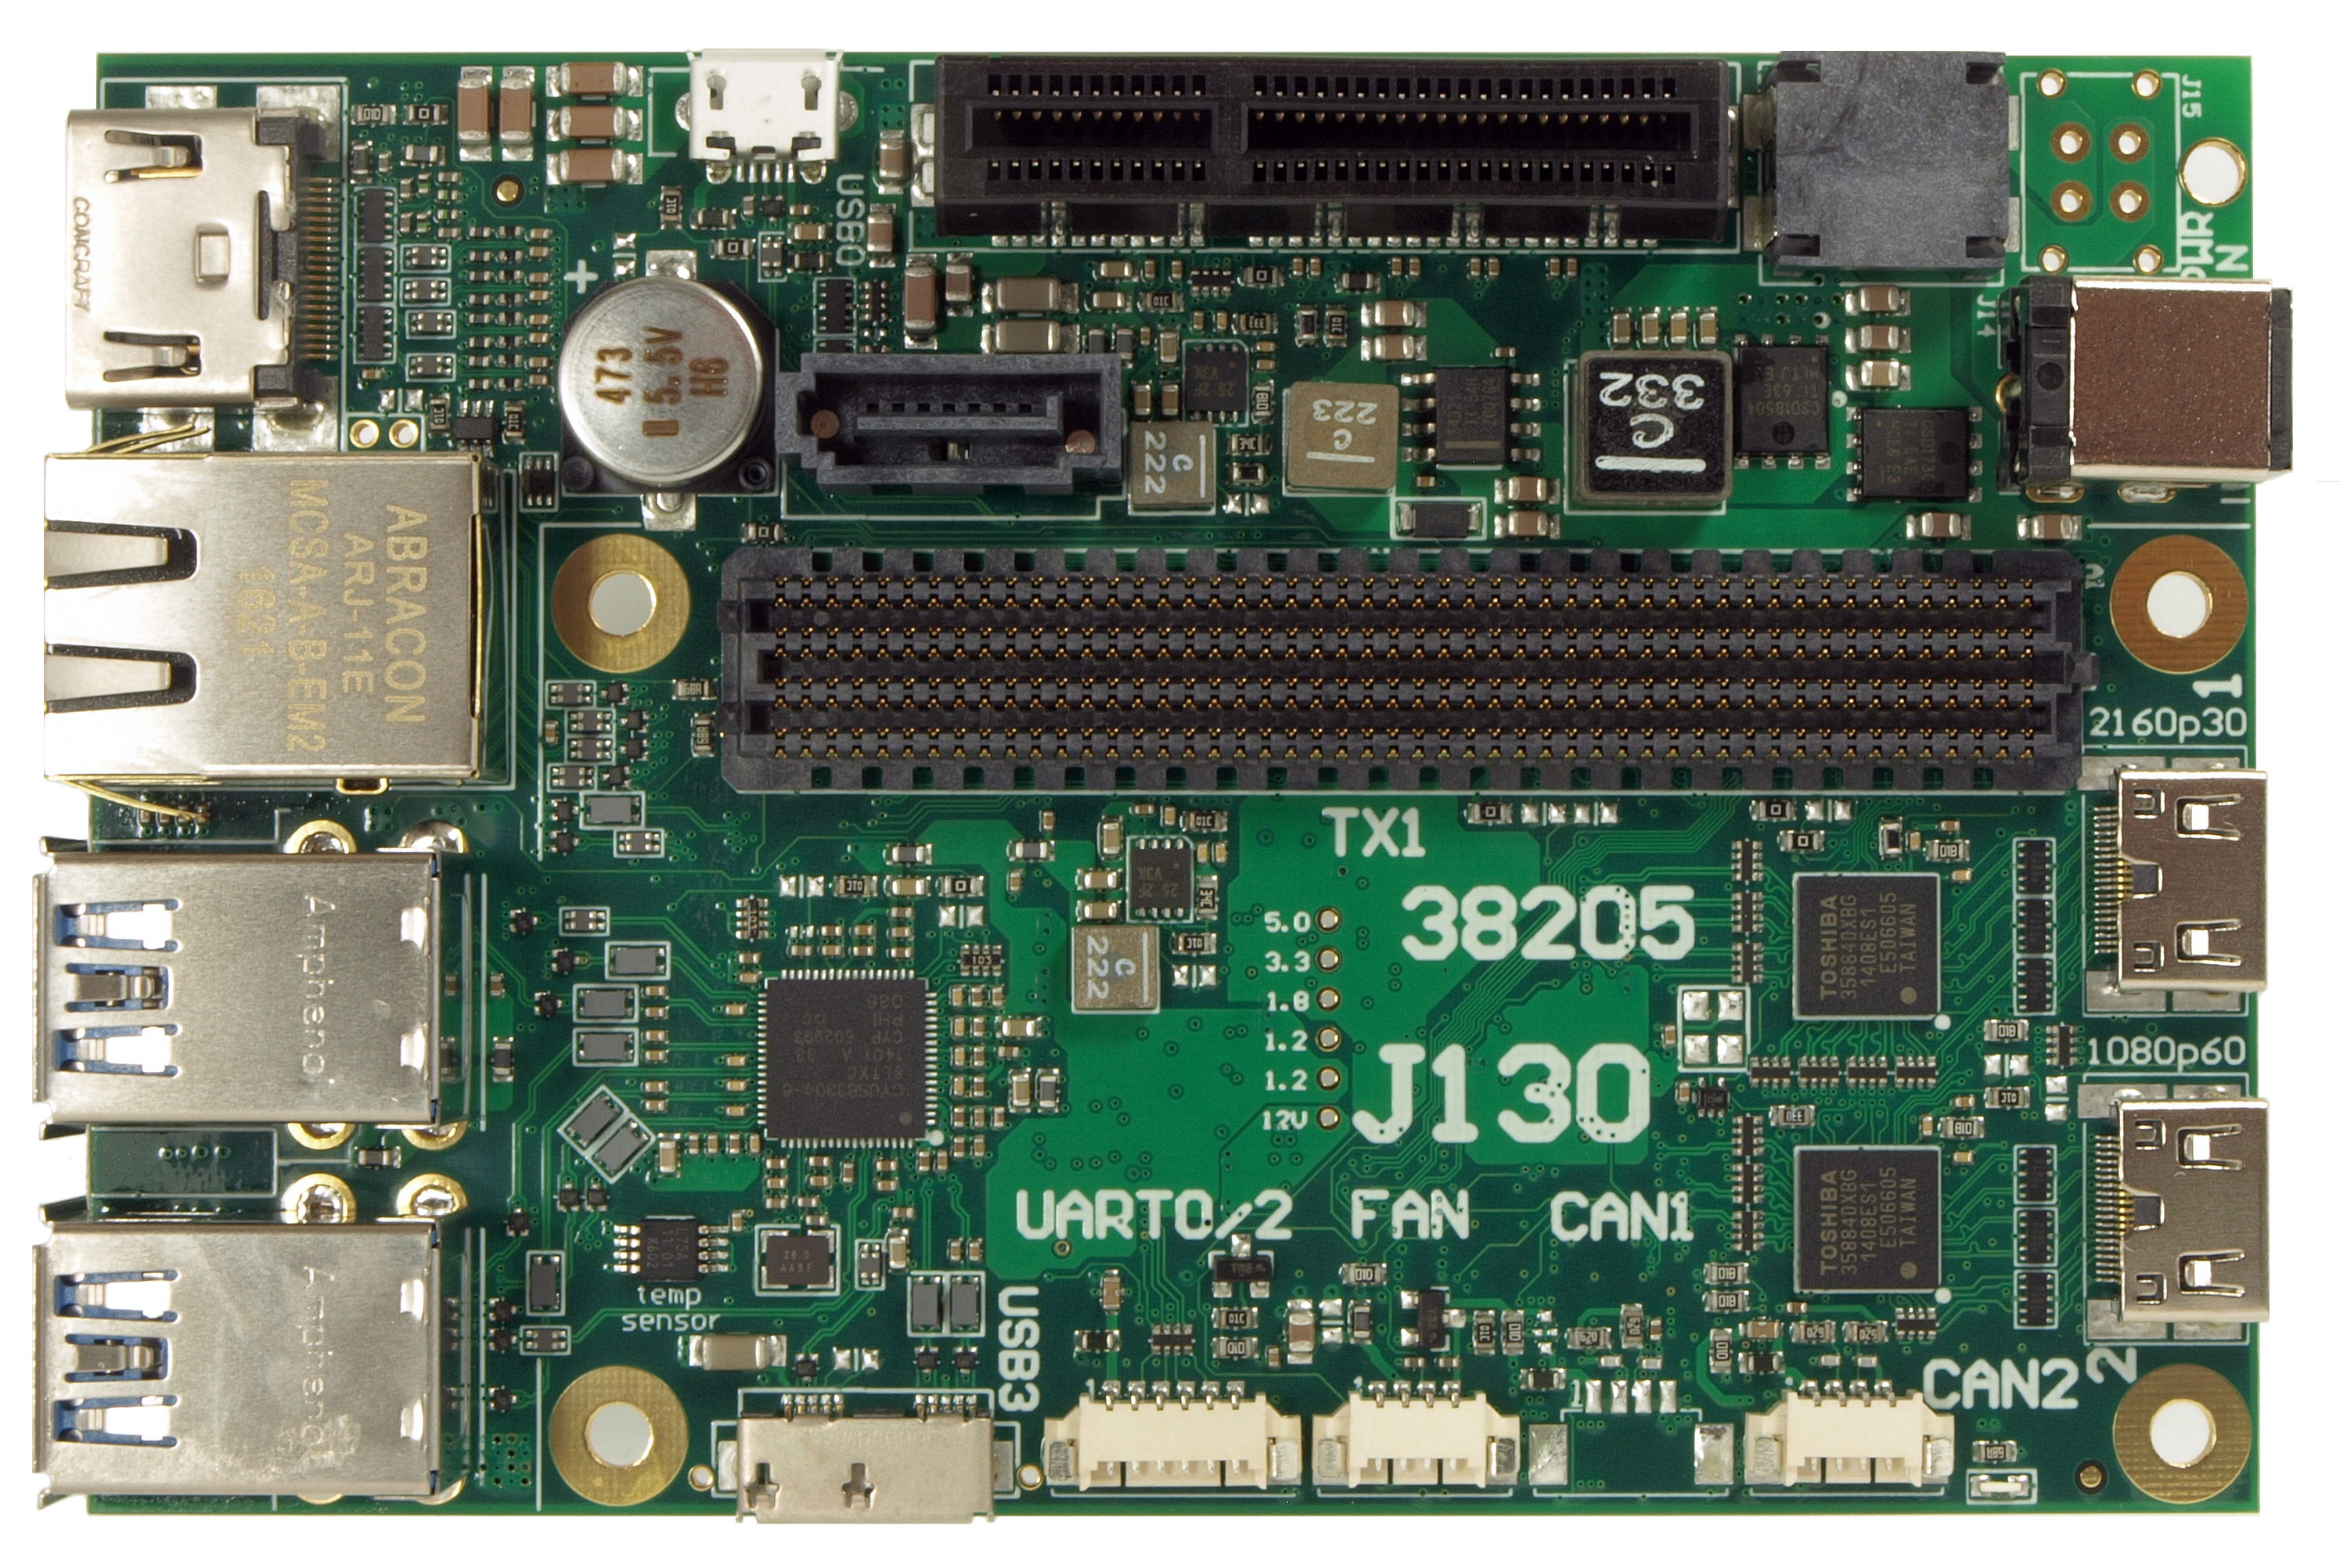 Auvidea Audio Video Media Integrated Circuit Wikipedia Photos And Videos J130 Carrier Board For The Jetson Tx1